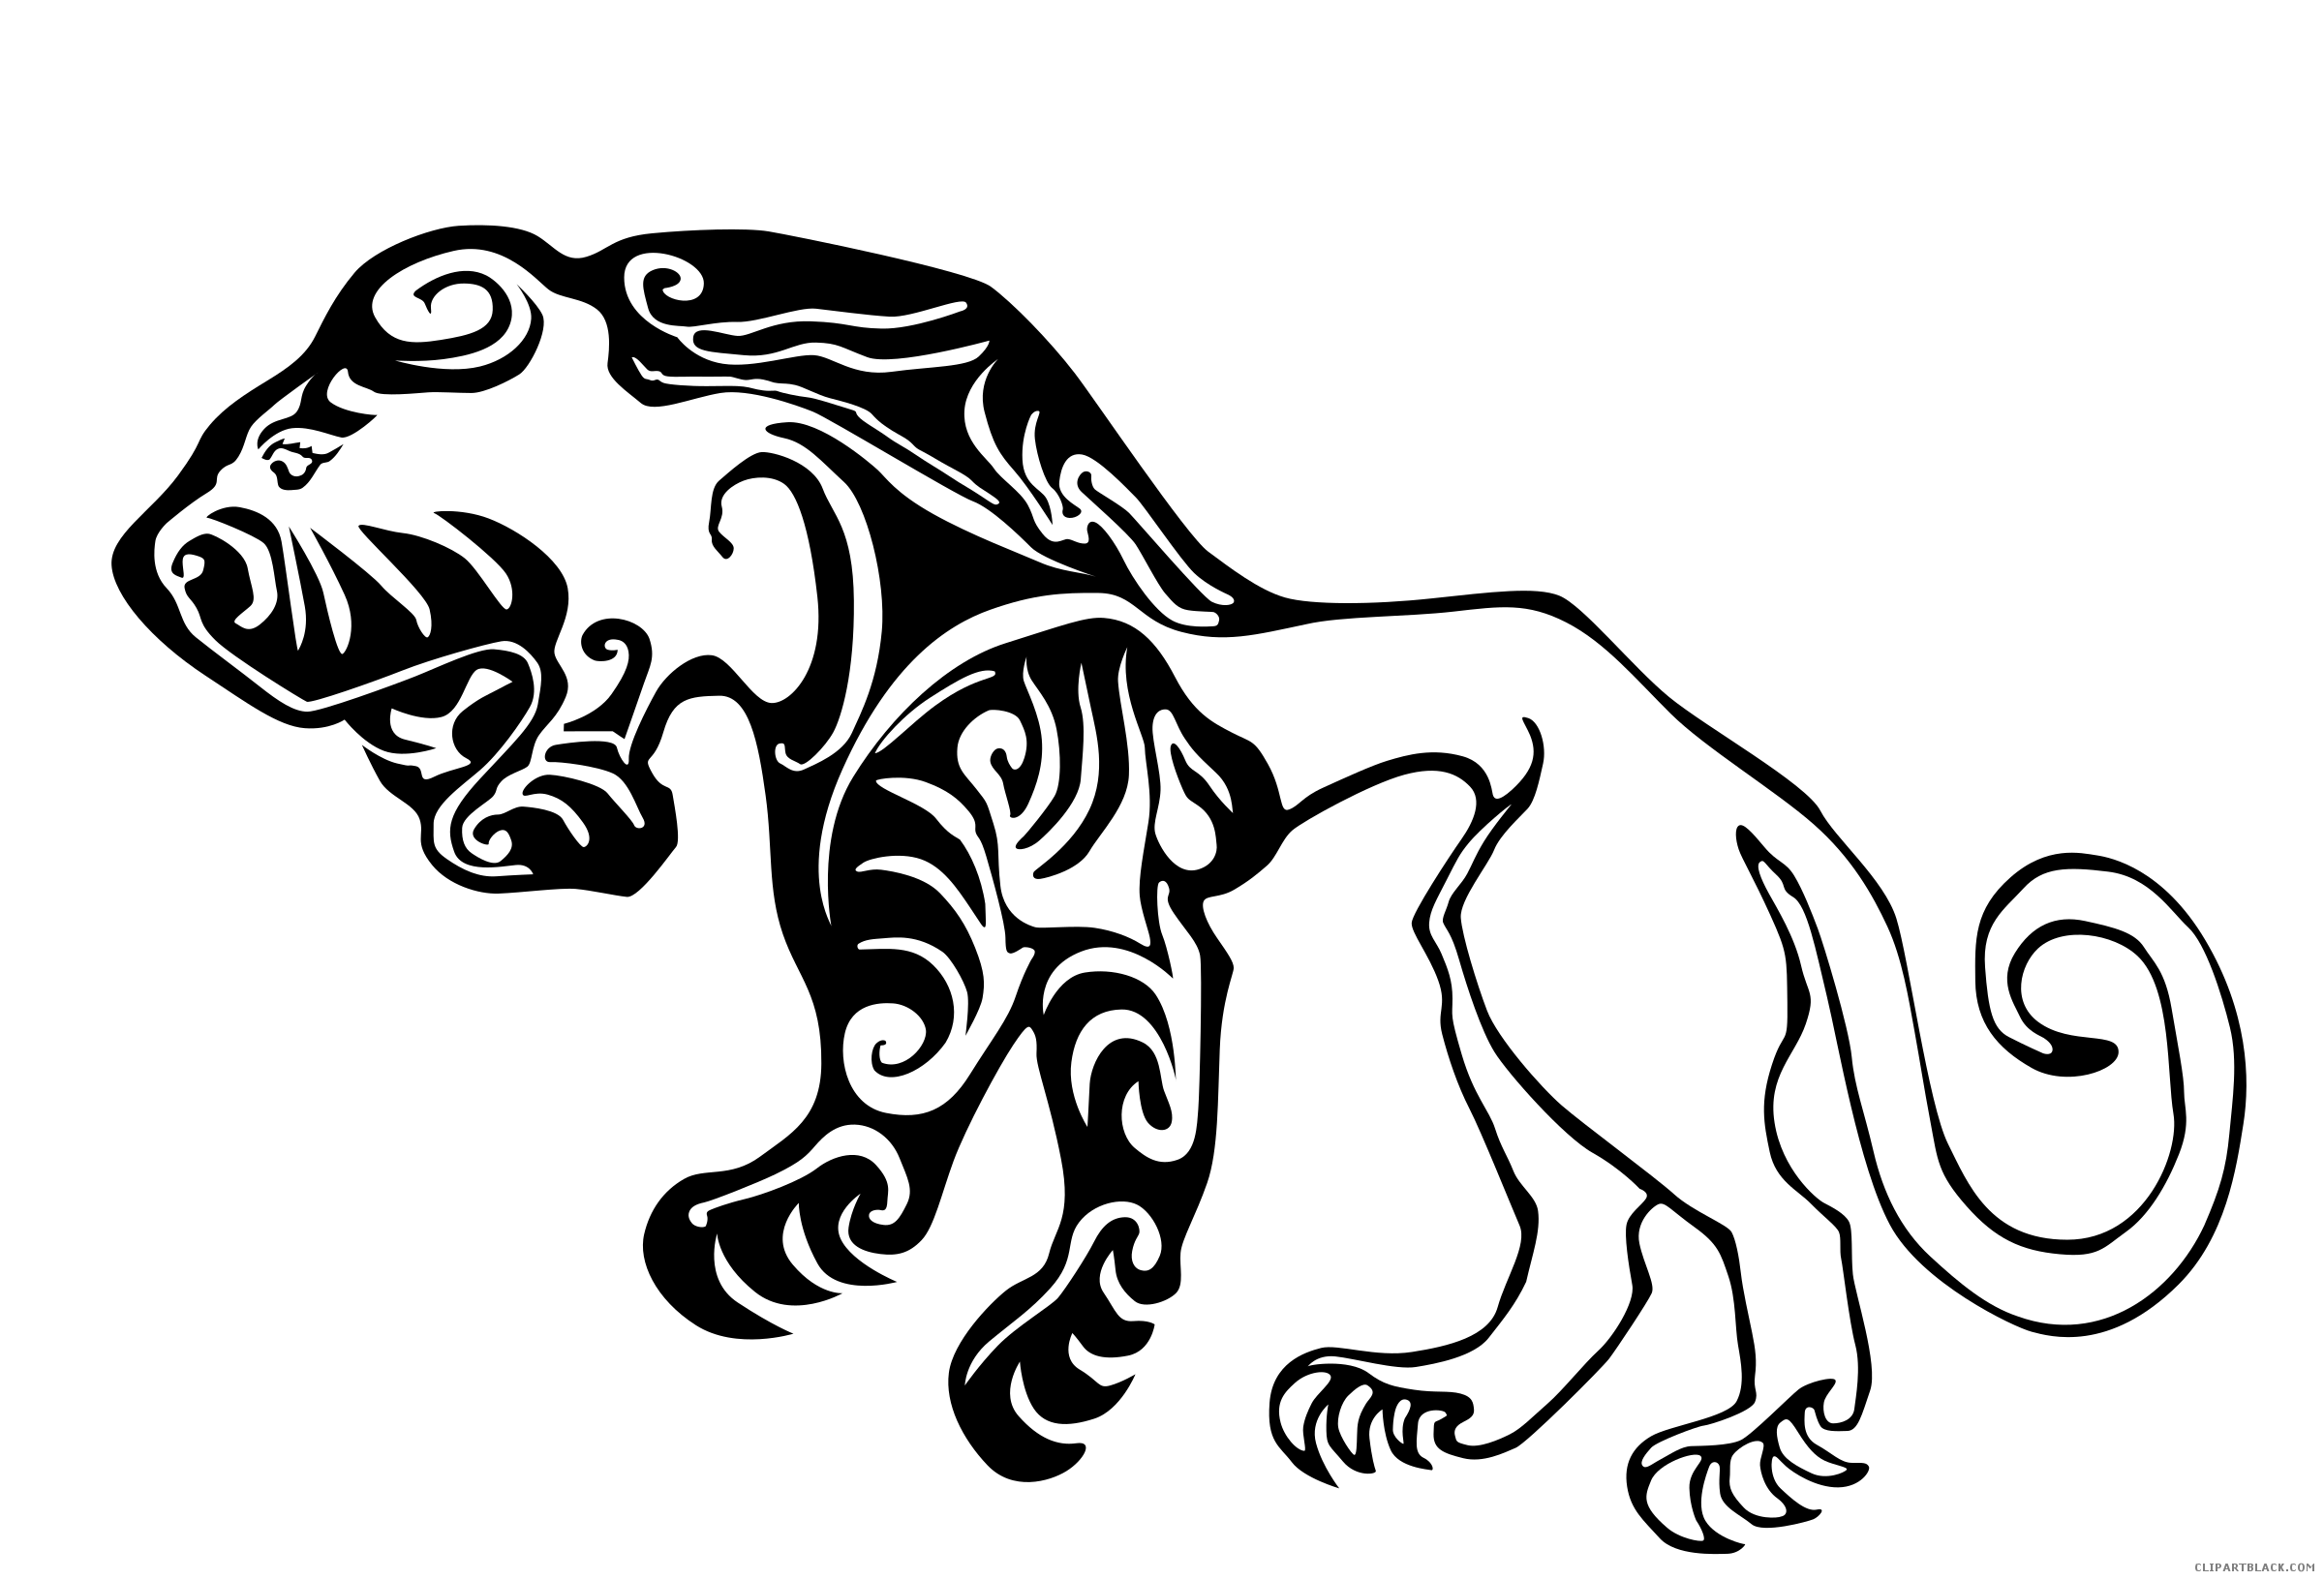 Clipart tiger black and white. Animal free images clipartblack